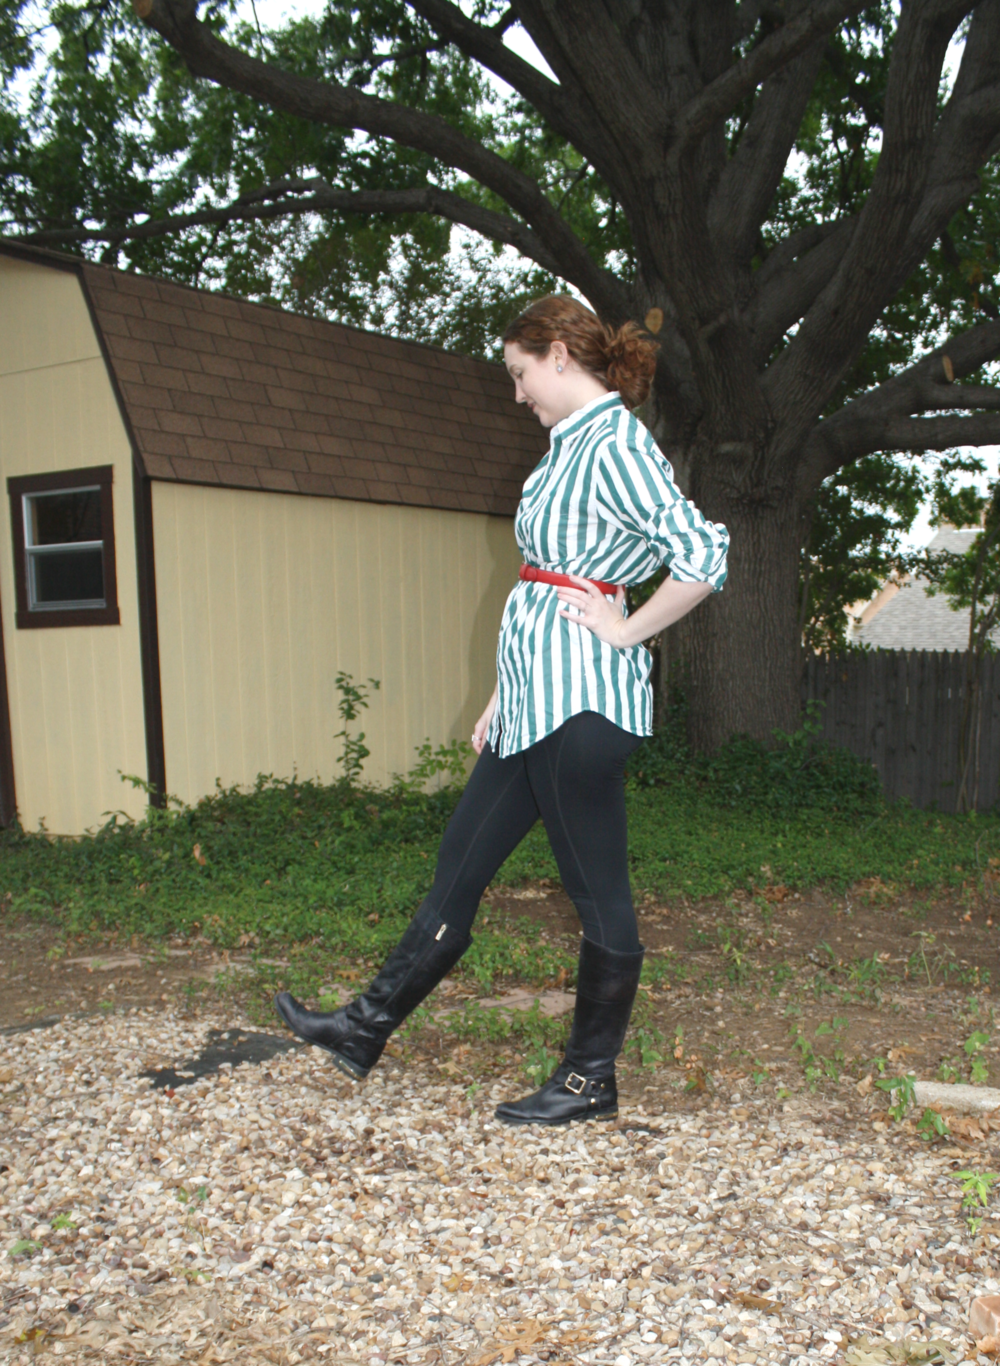 J. Crew men's green striped button down shirt + Girlfriend Collective black leggings, + Vince Camuto boots + Vintage red belt